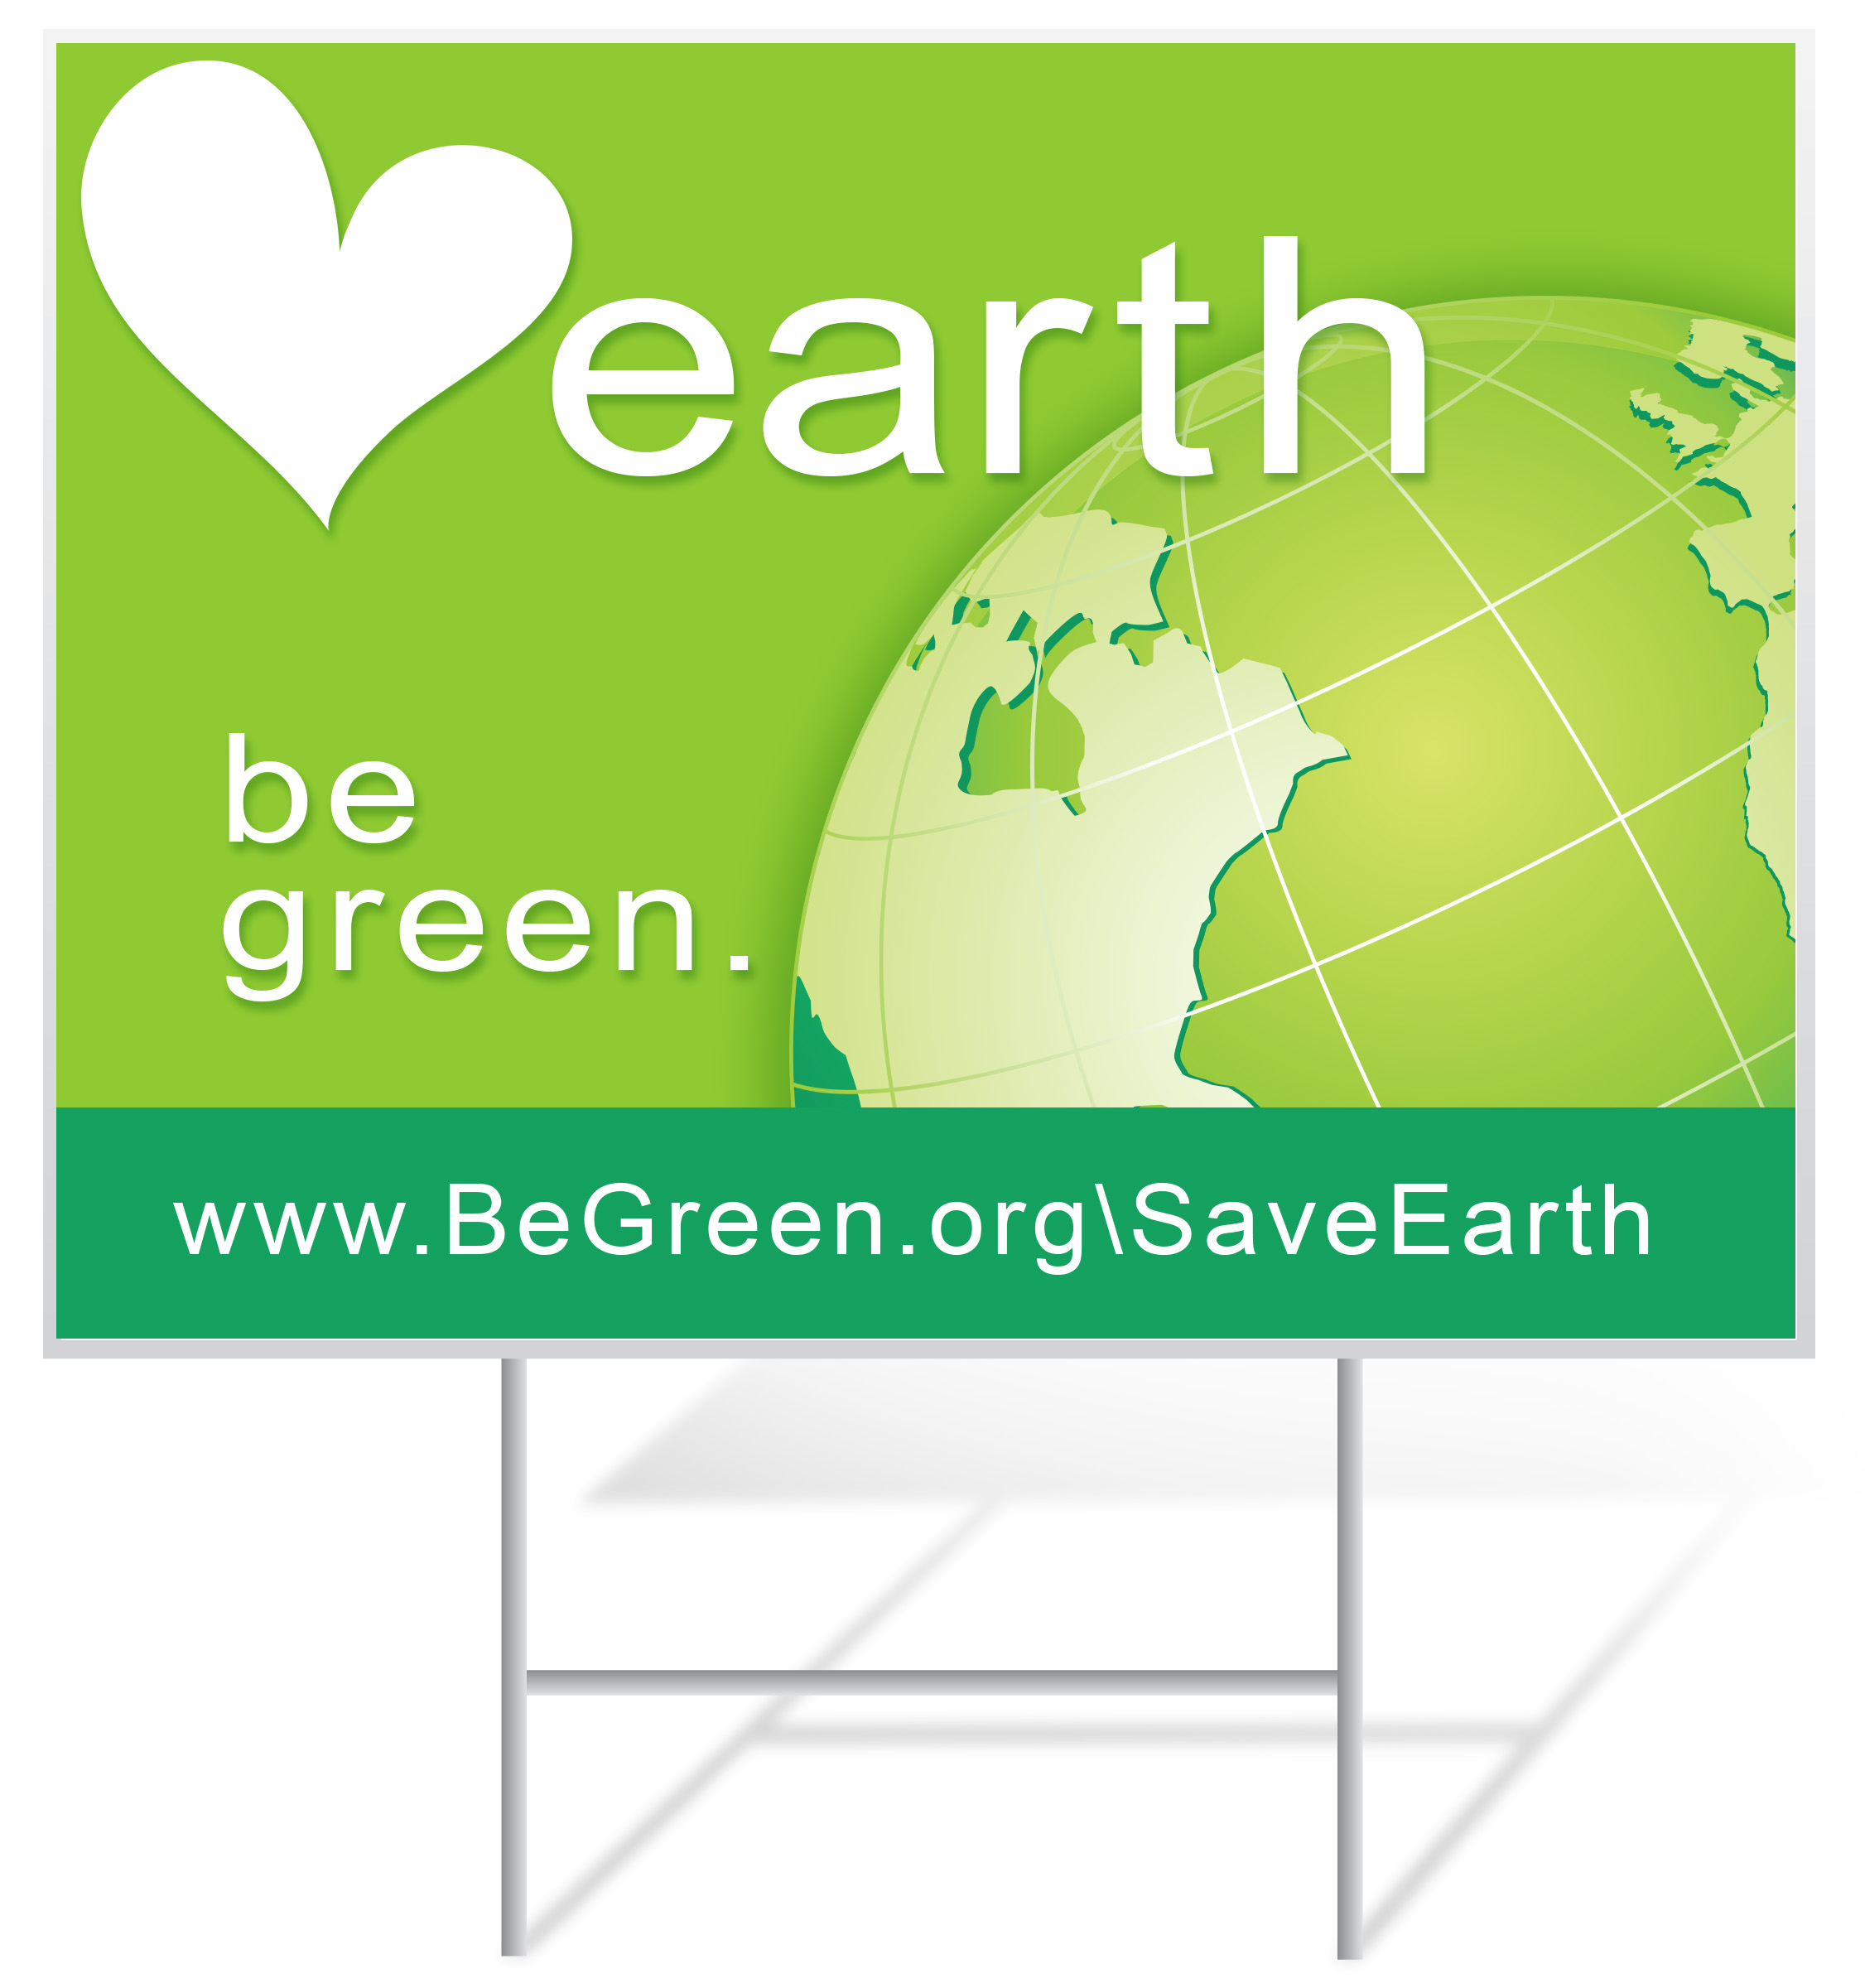 Earth Day Lawn Sign Example | LawnSigns.com